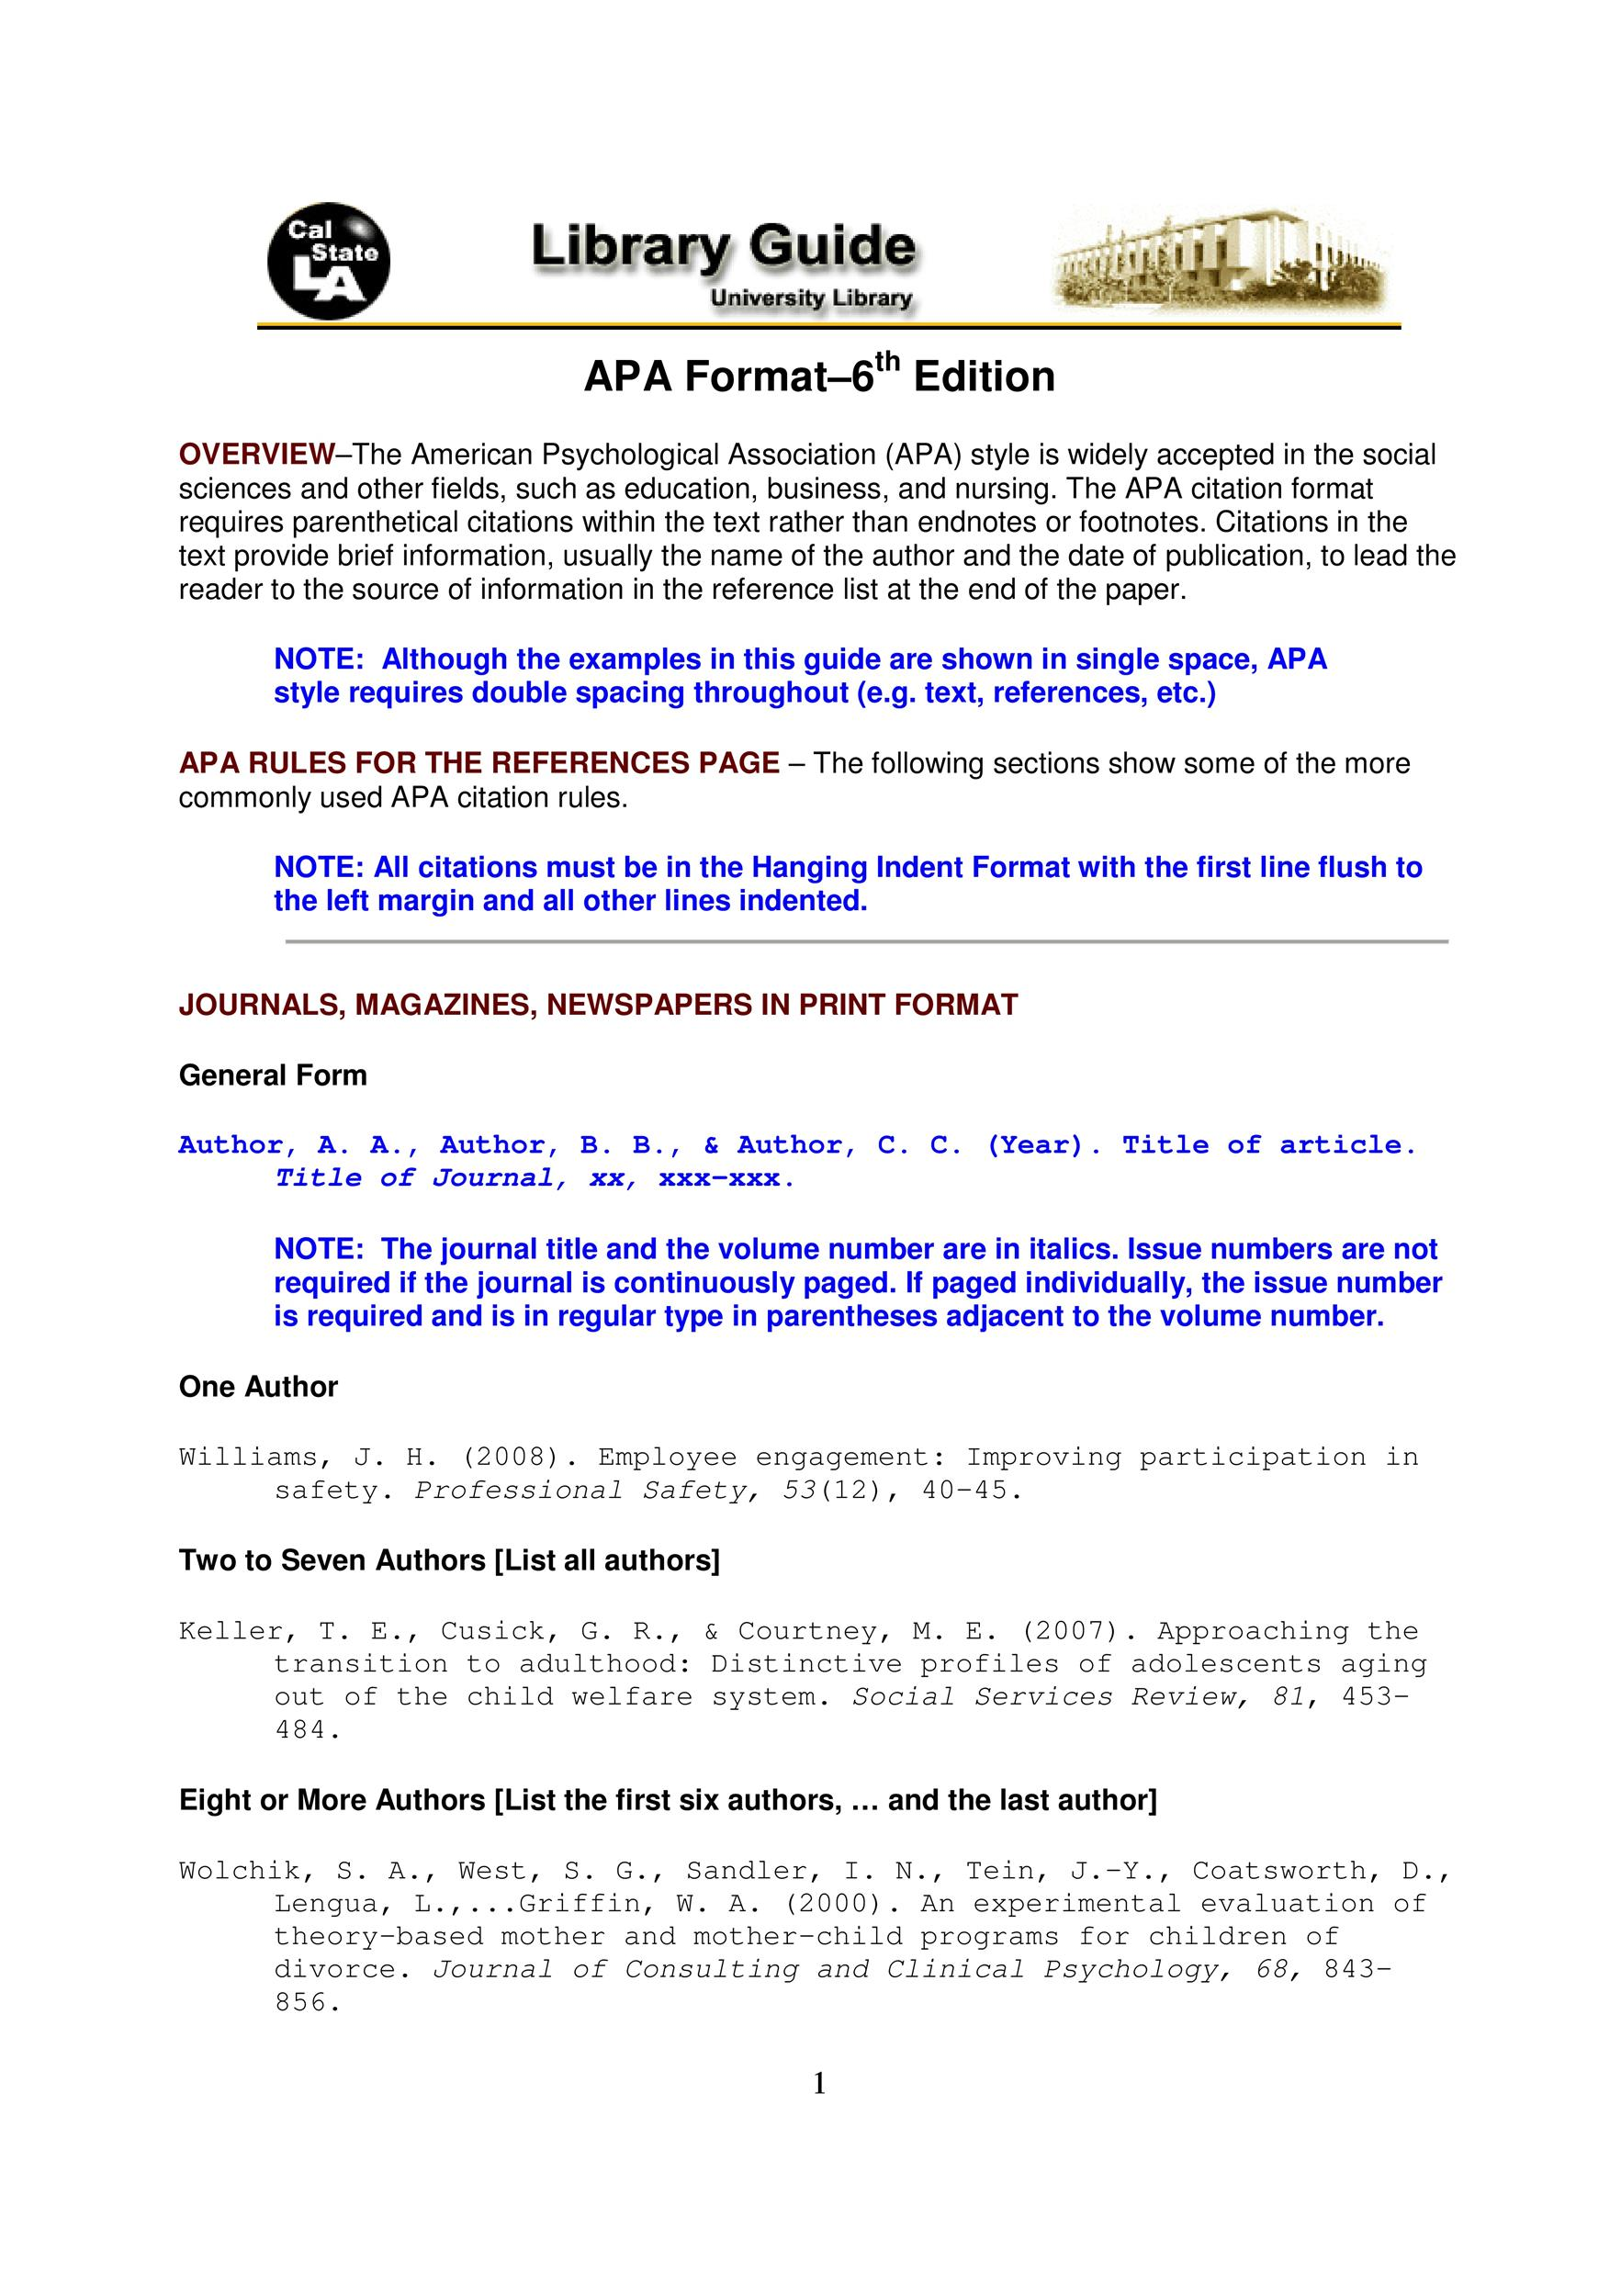 apa format template word 2007 download